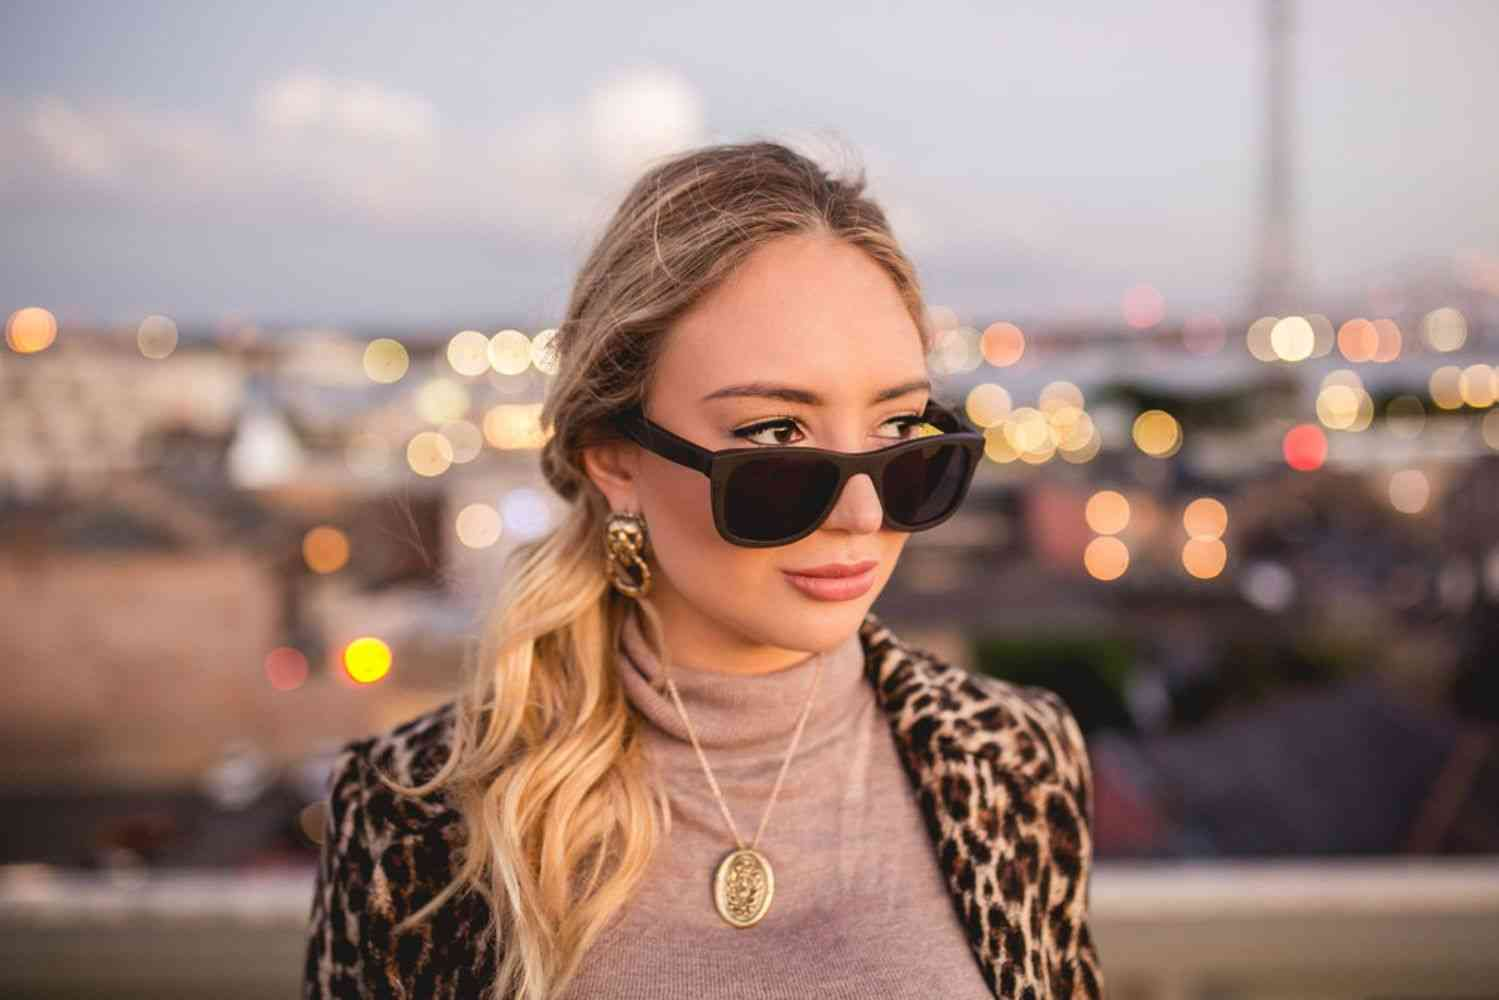 Handcrafted Root Sunglass